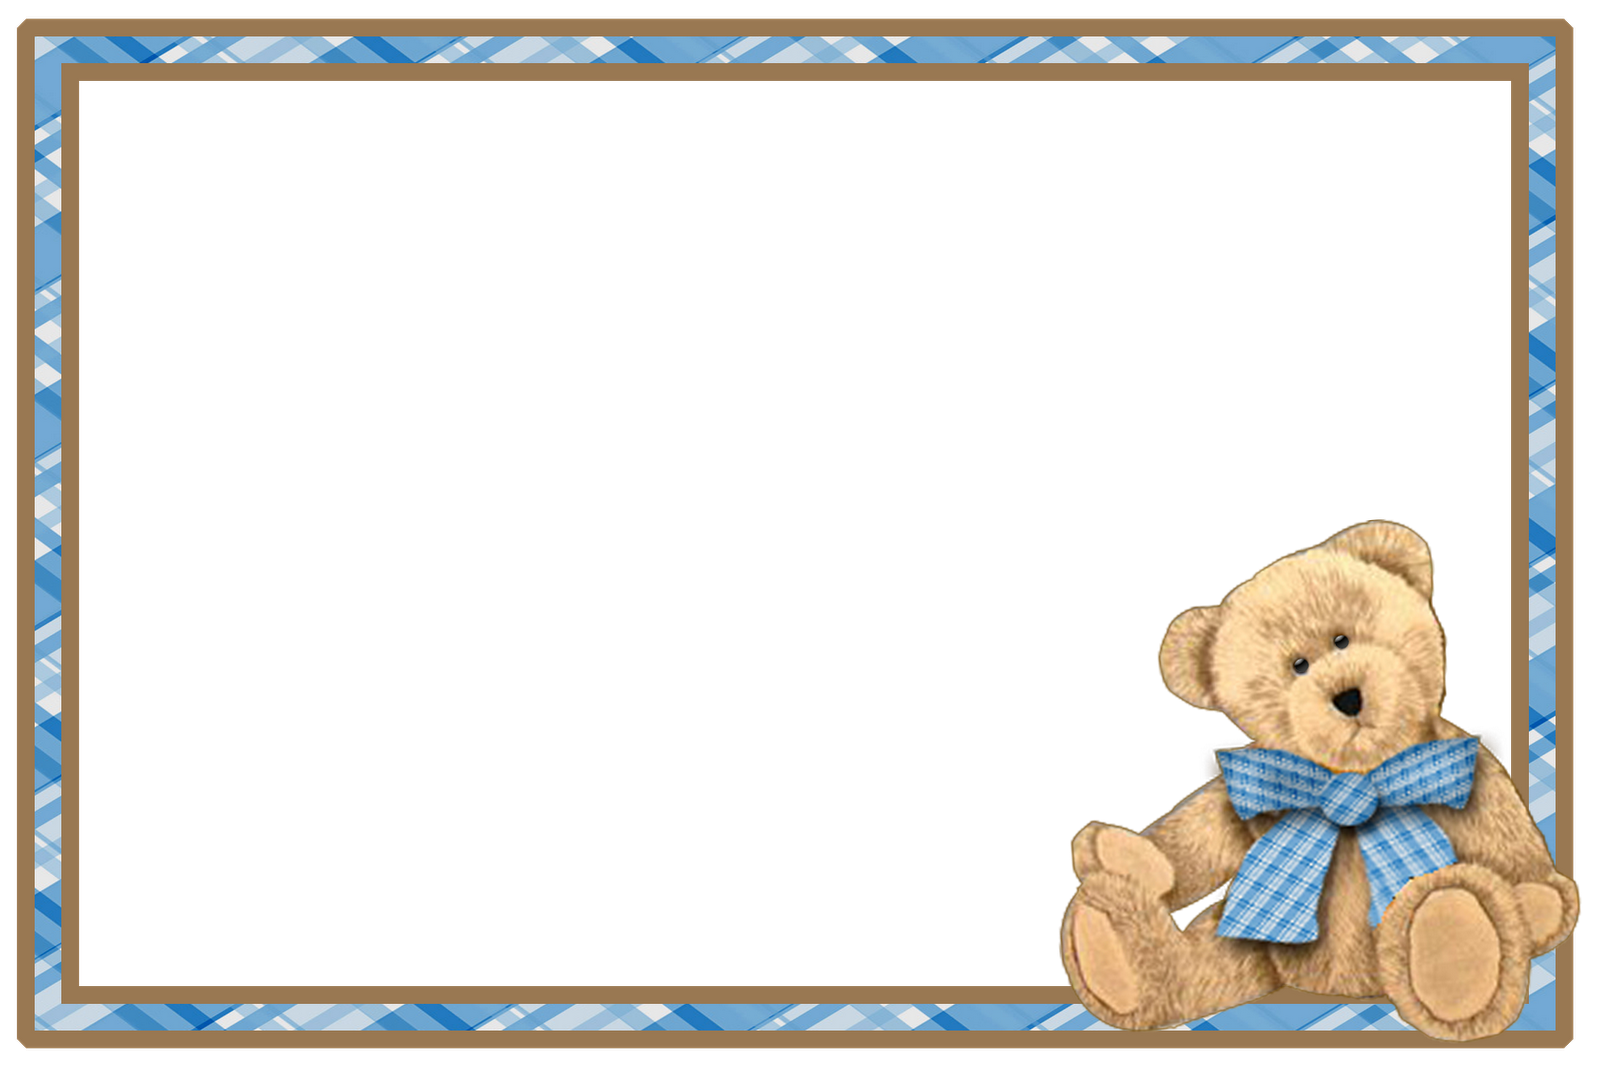 Free Baby Borders Clip Art Frames And Borders For Babies